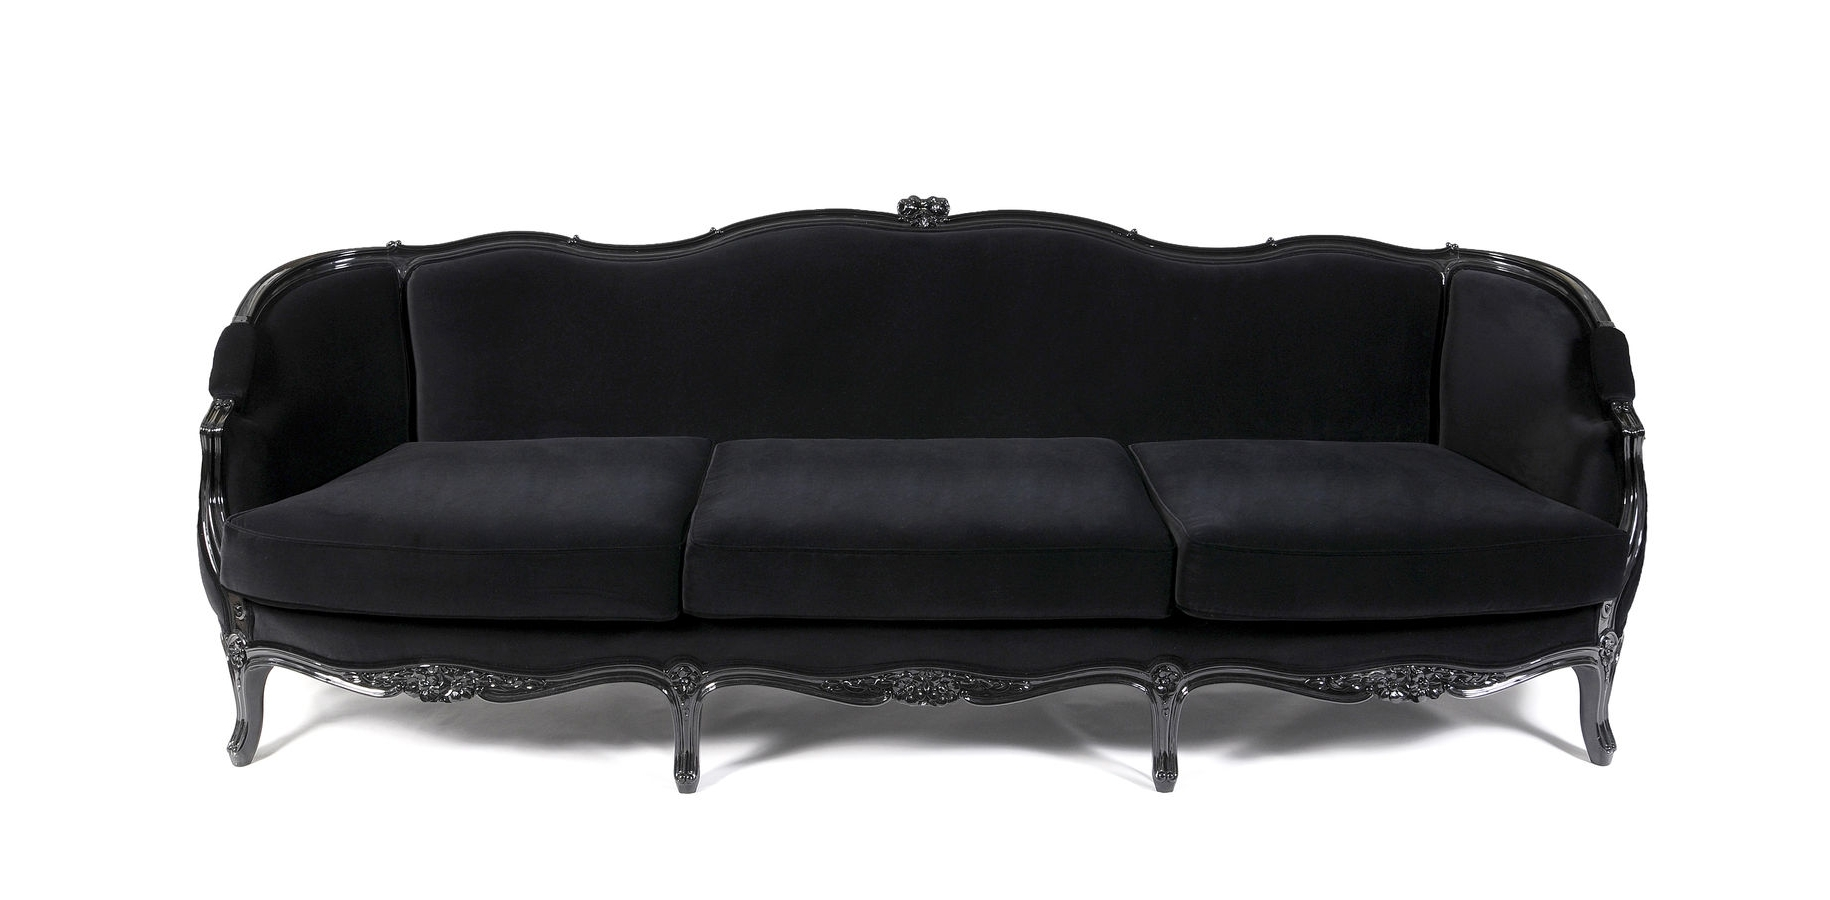 Gothic Sofas In 2019 Sofa : Gothic Desk Gothic Couch Gothic Room Decor Gothic Sofas For (Gallery 13 of 20)